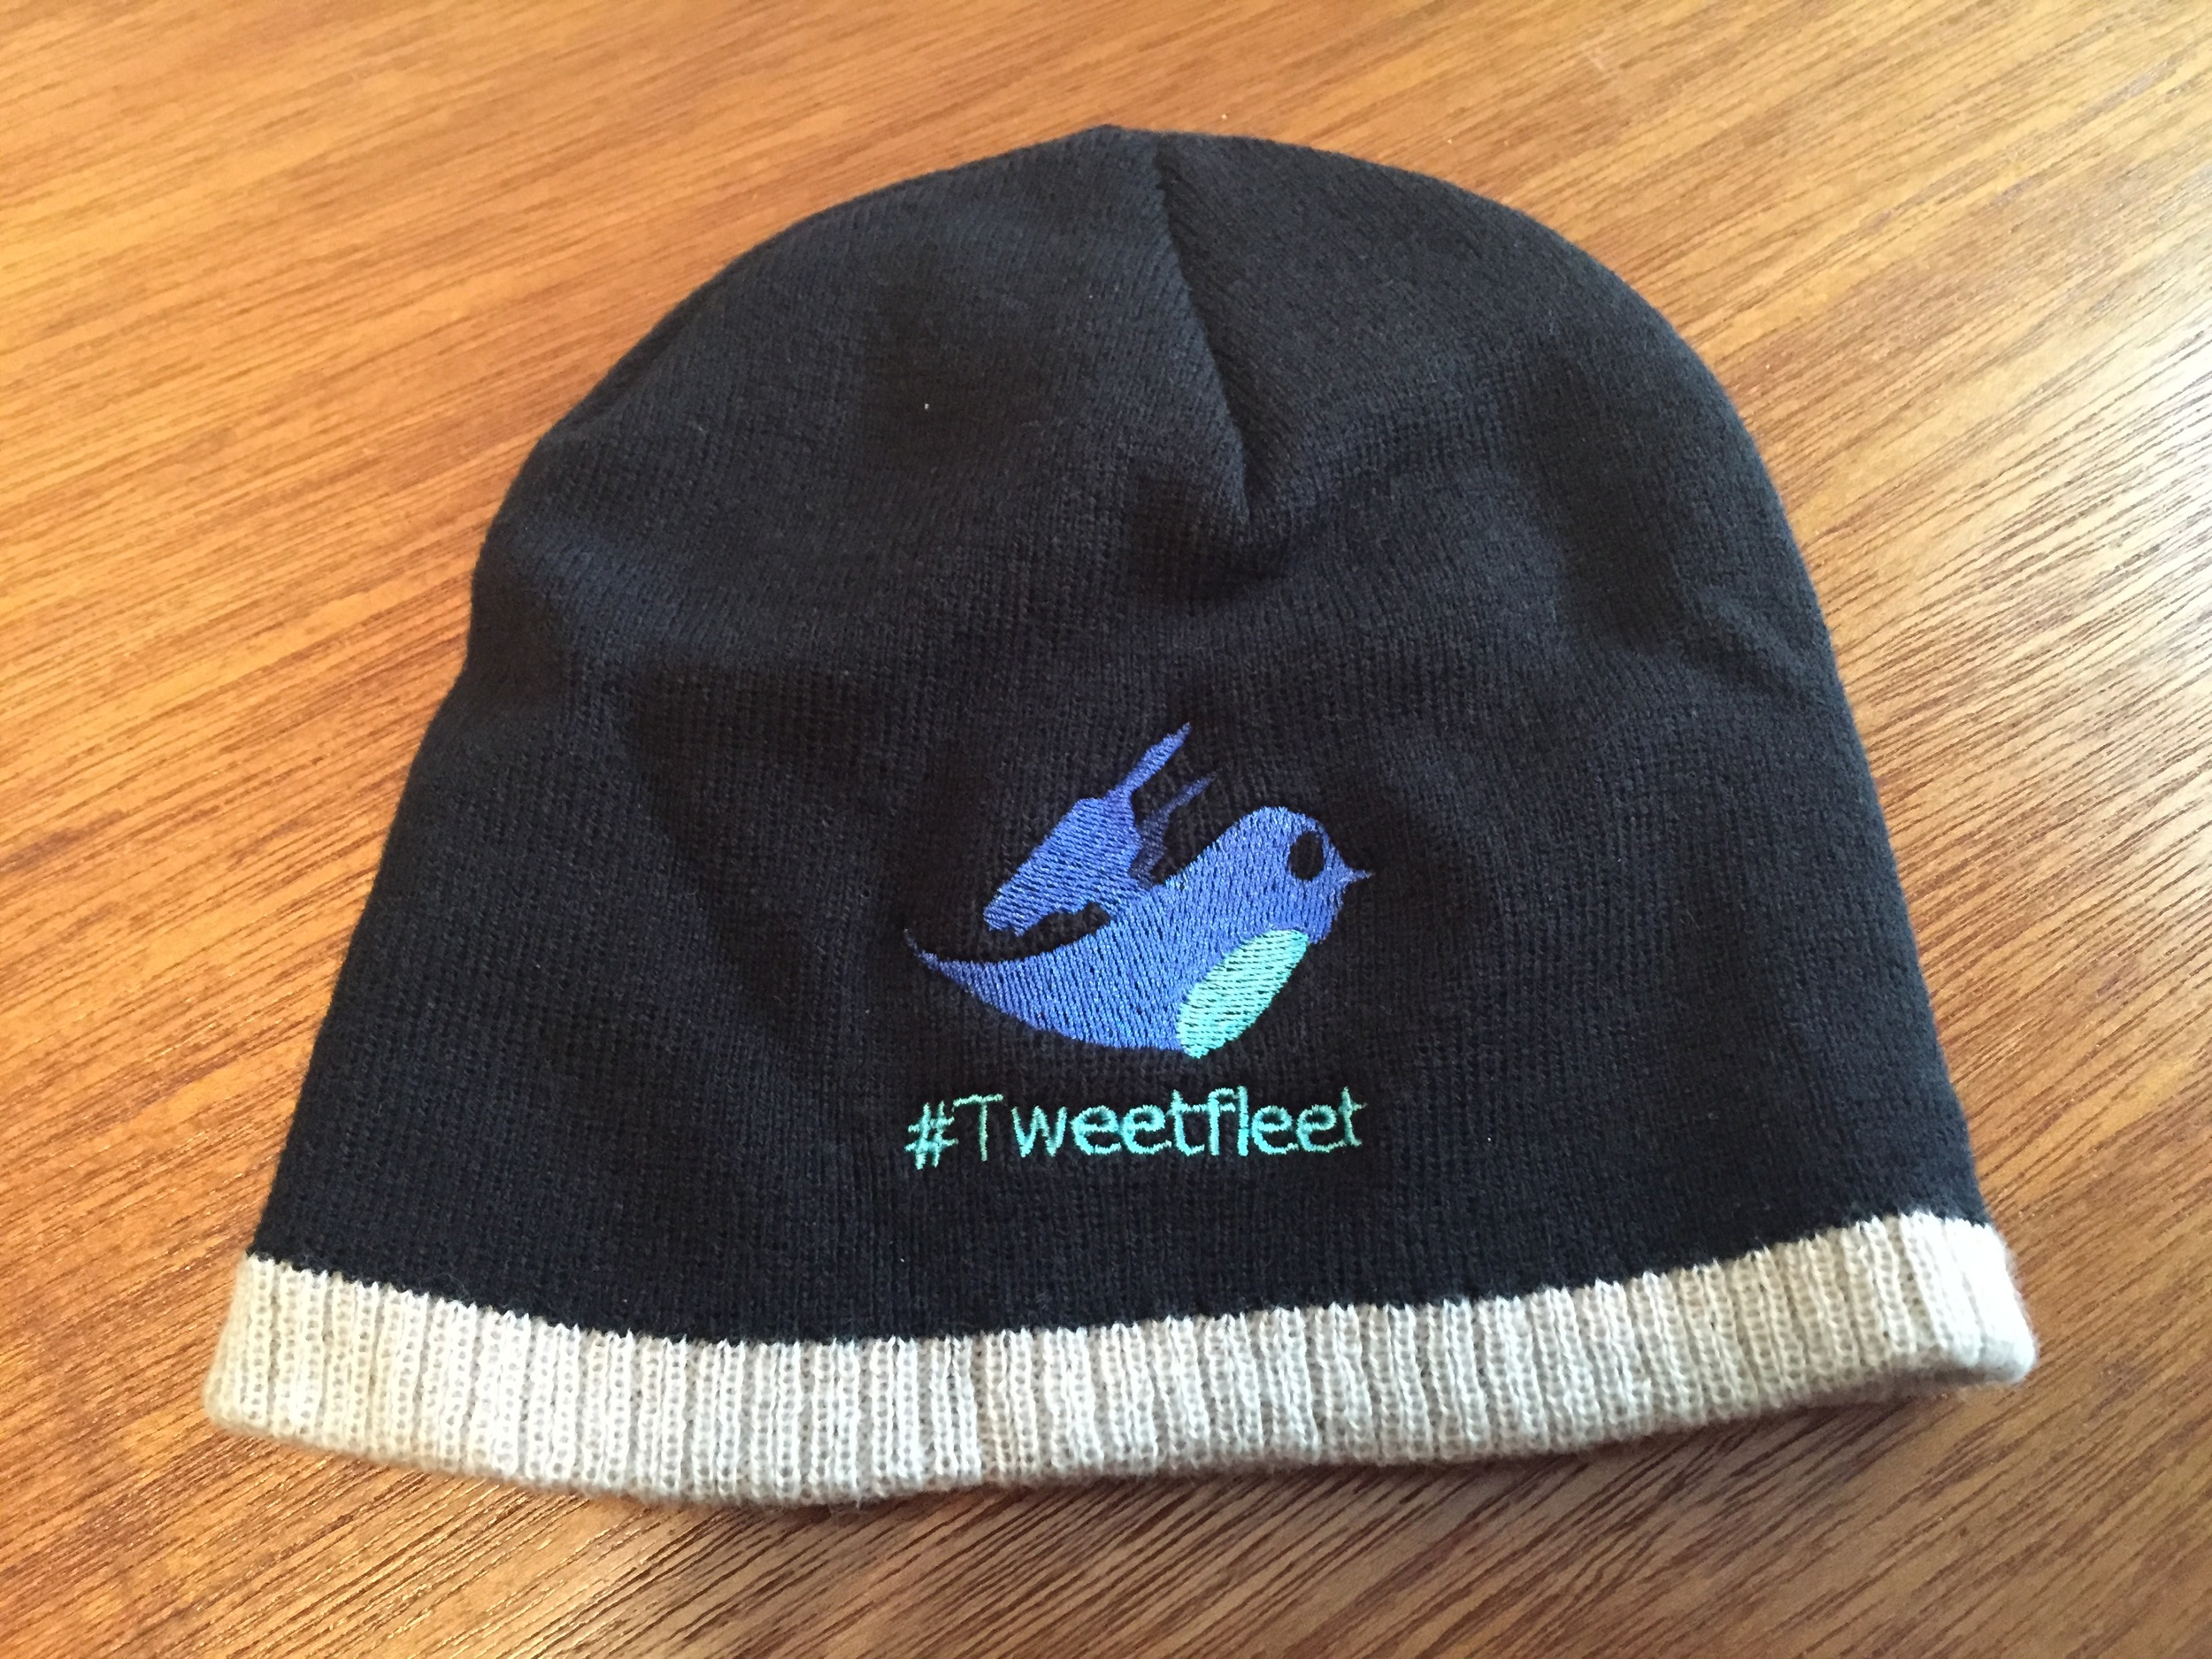 My #Tweetfleet hat that I received as a gift at Fanfest this year, courtesy of  General Stargazer .